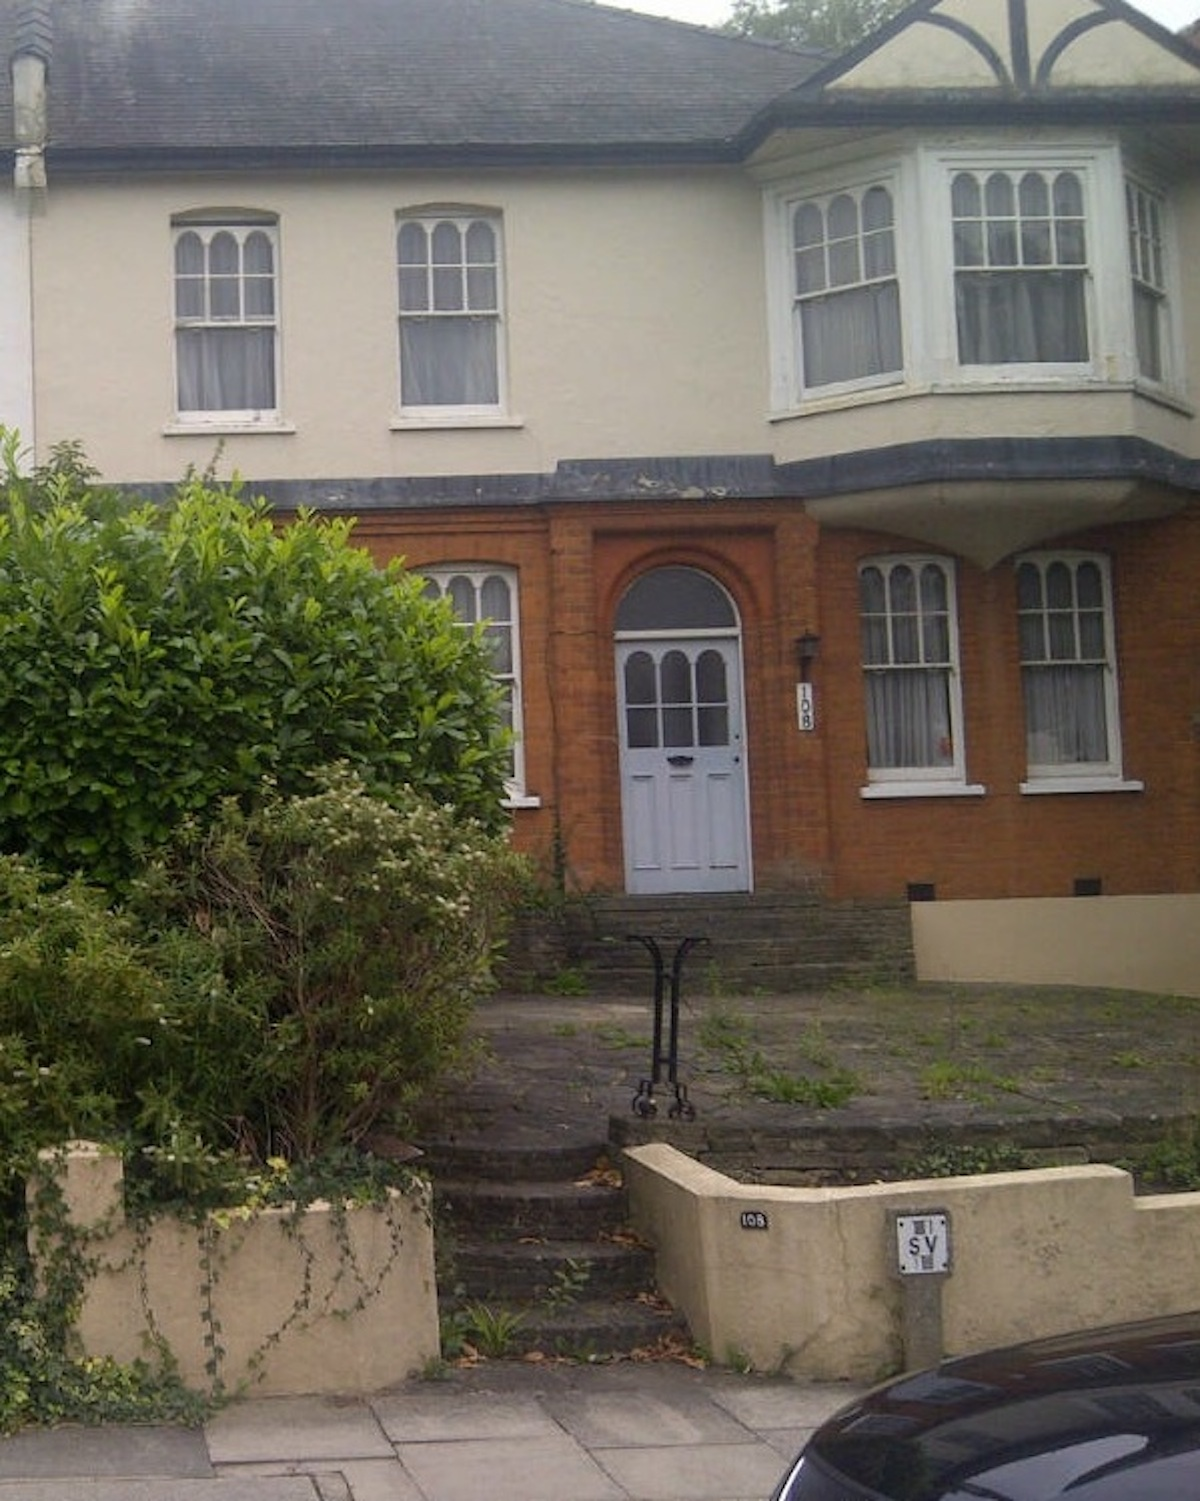 Neighbours oppose plans to turn house into flats